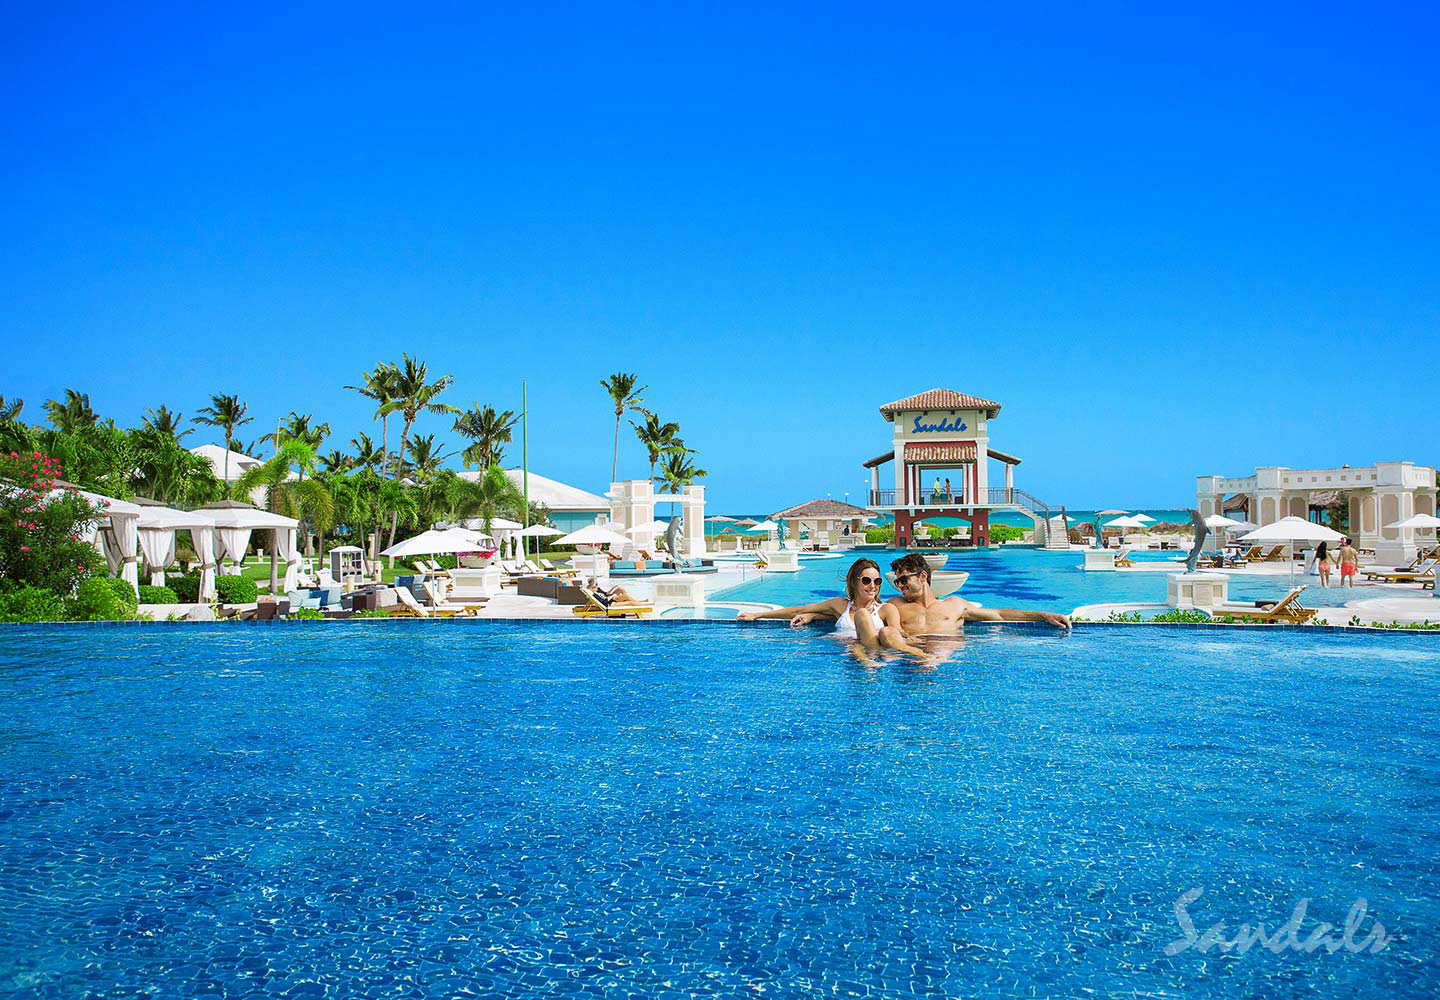 Travel Agency All-Inclusive Resort Sandals Emerald Bay 118